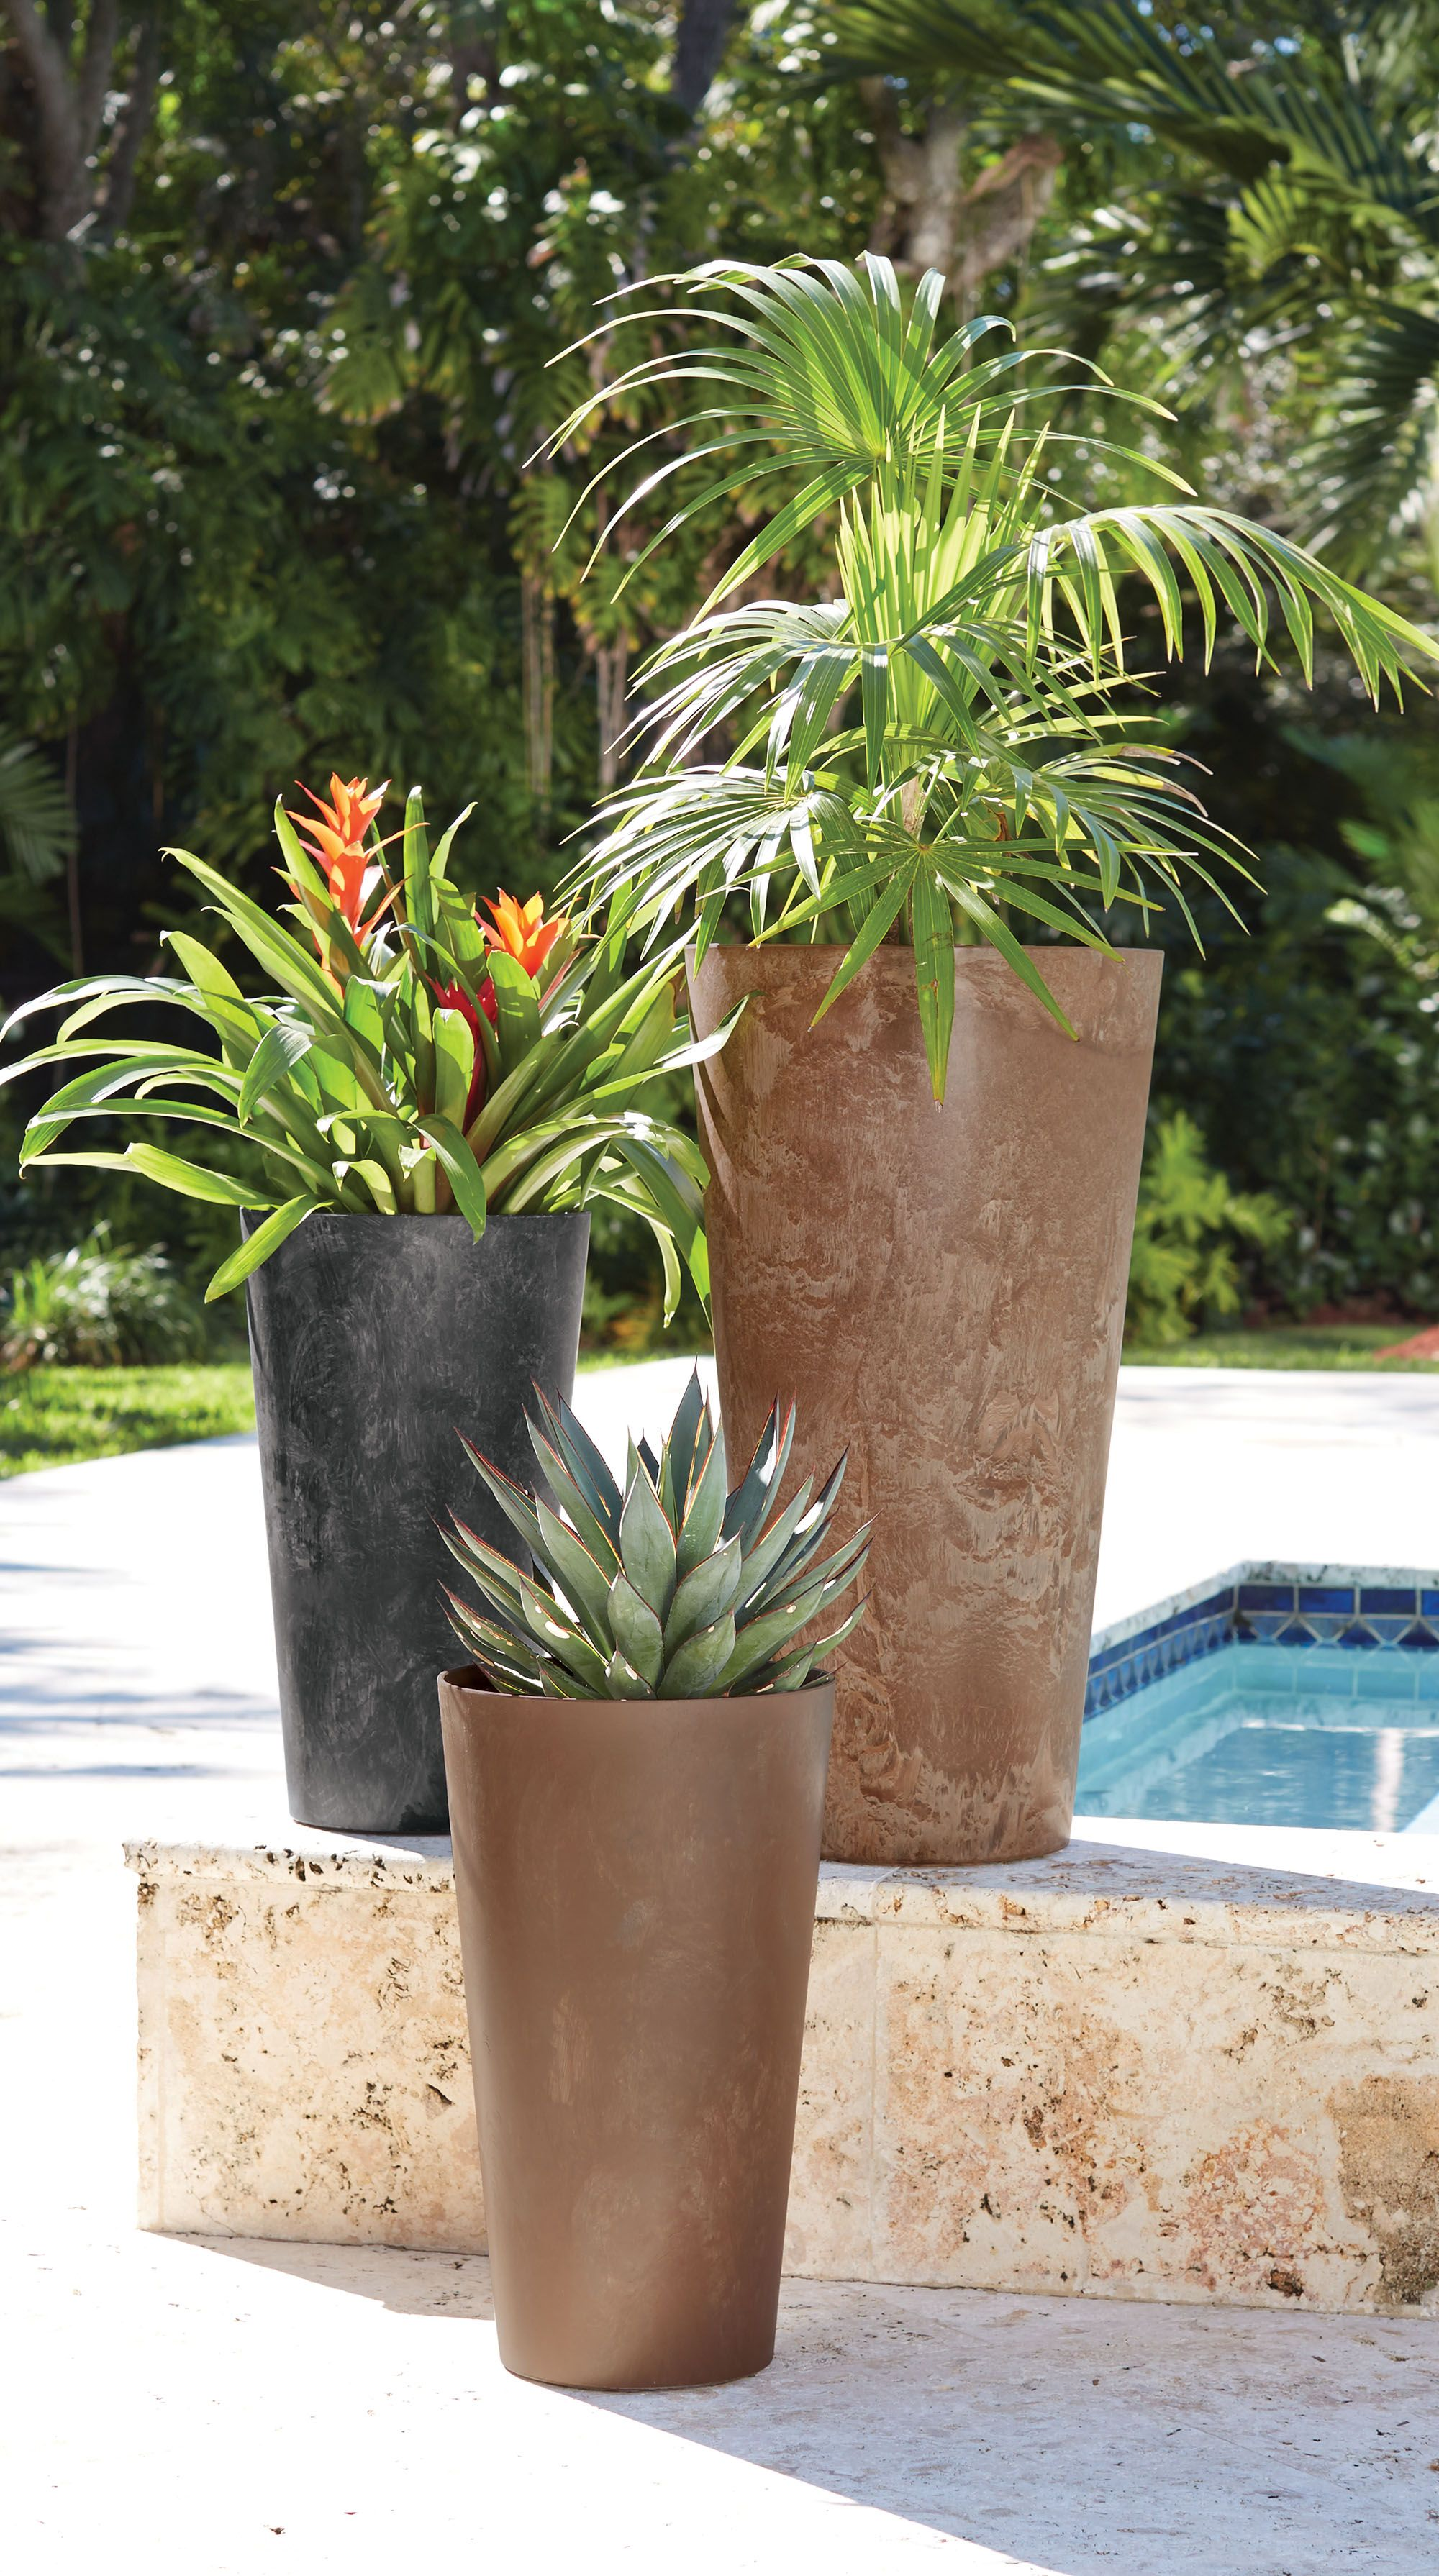 Pretty up your pool or patio with planters full of lush